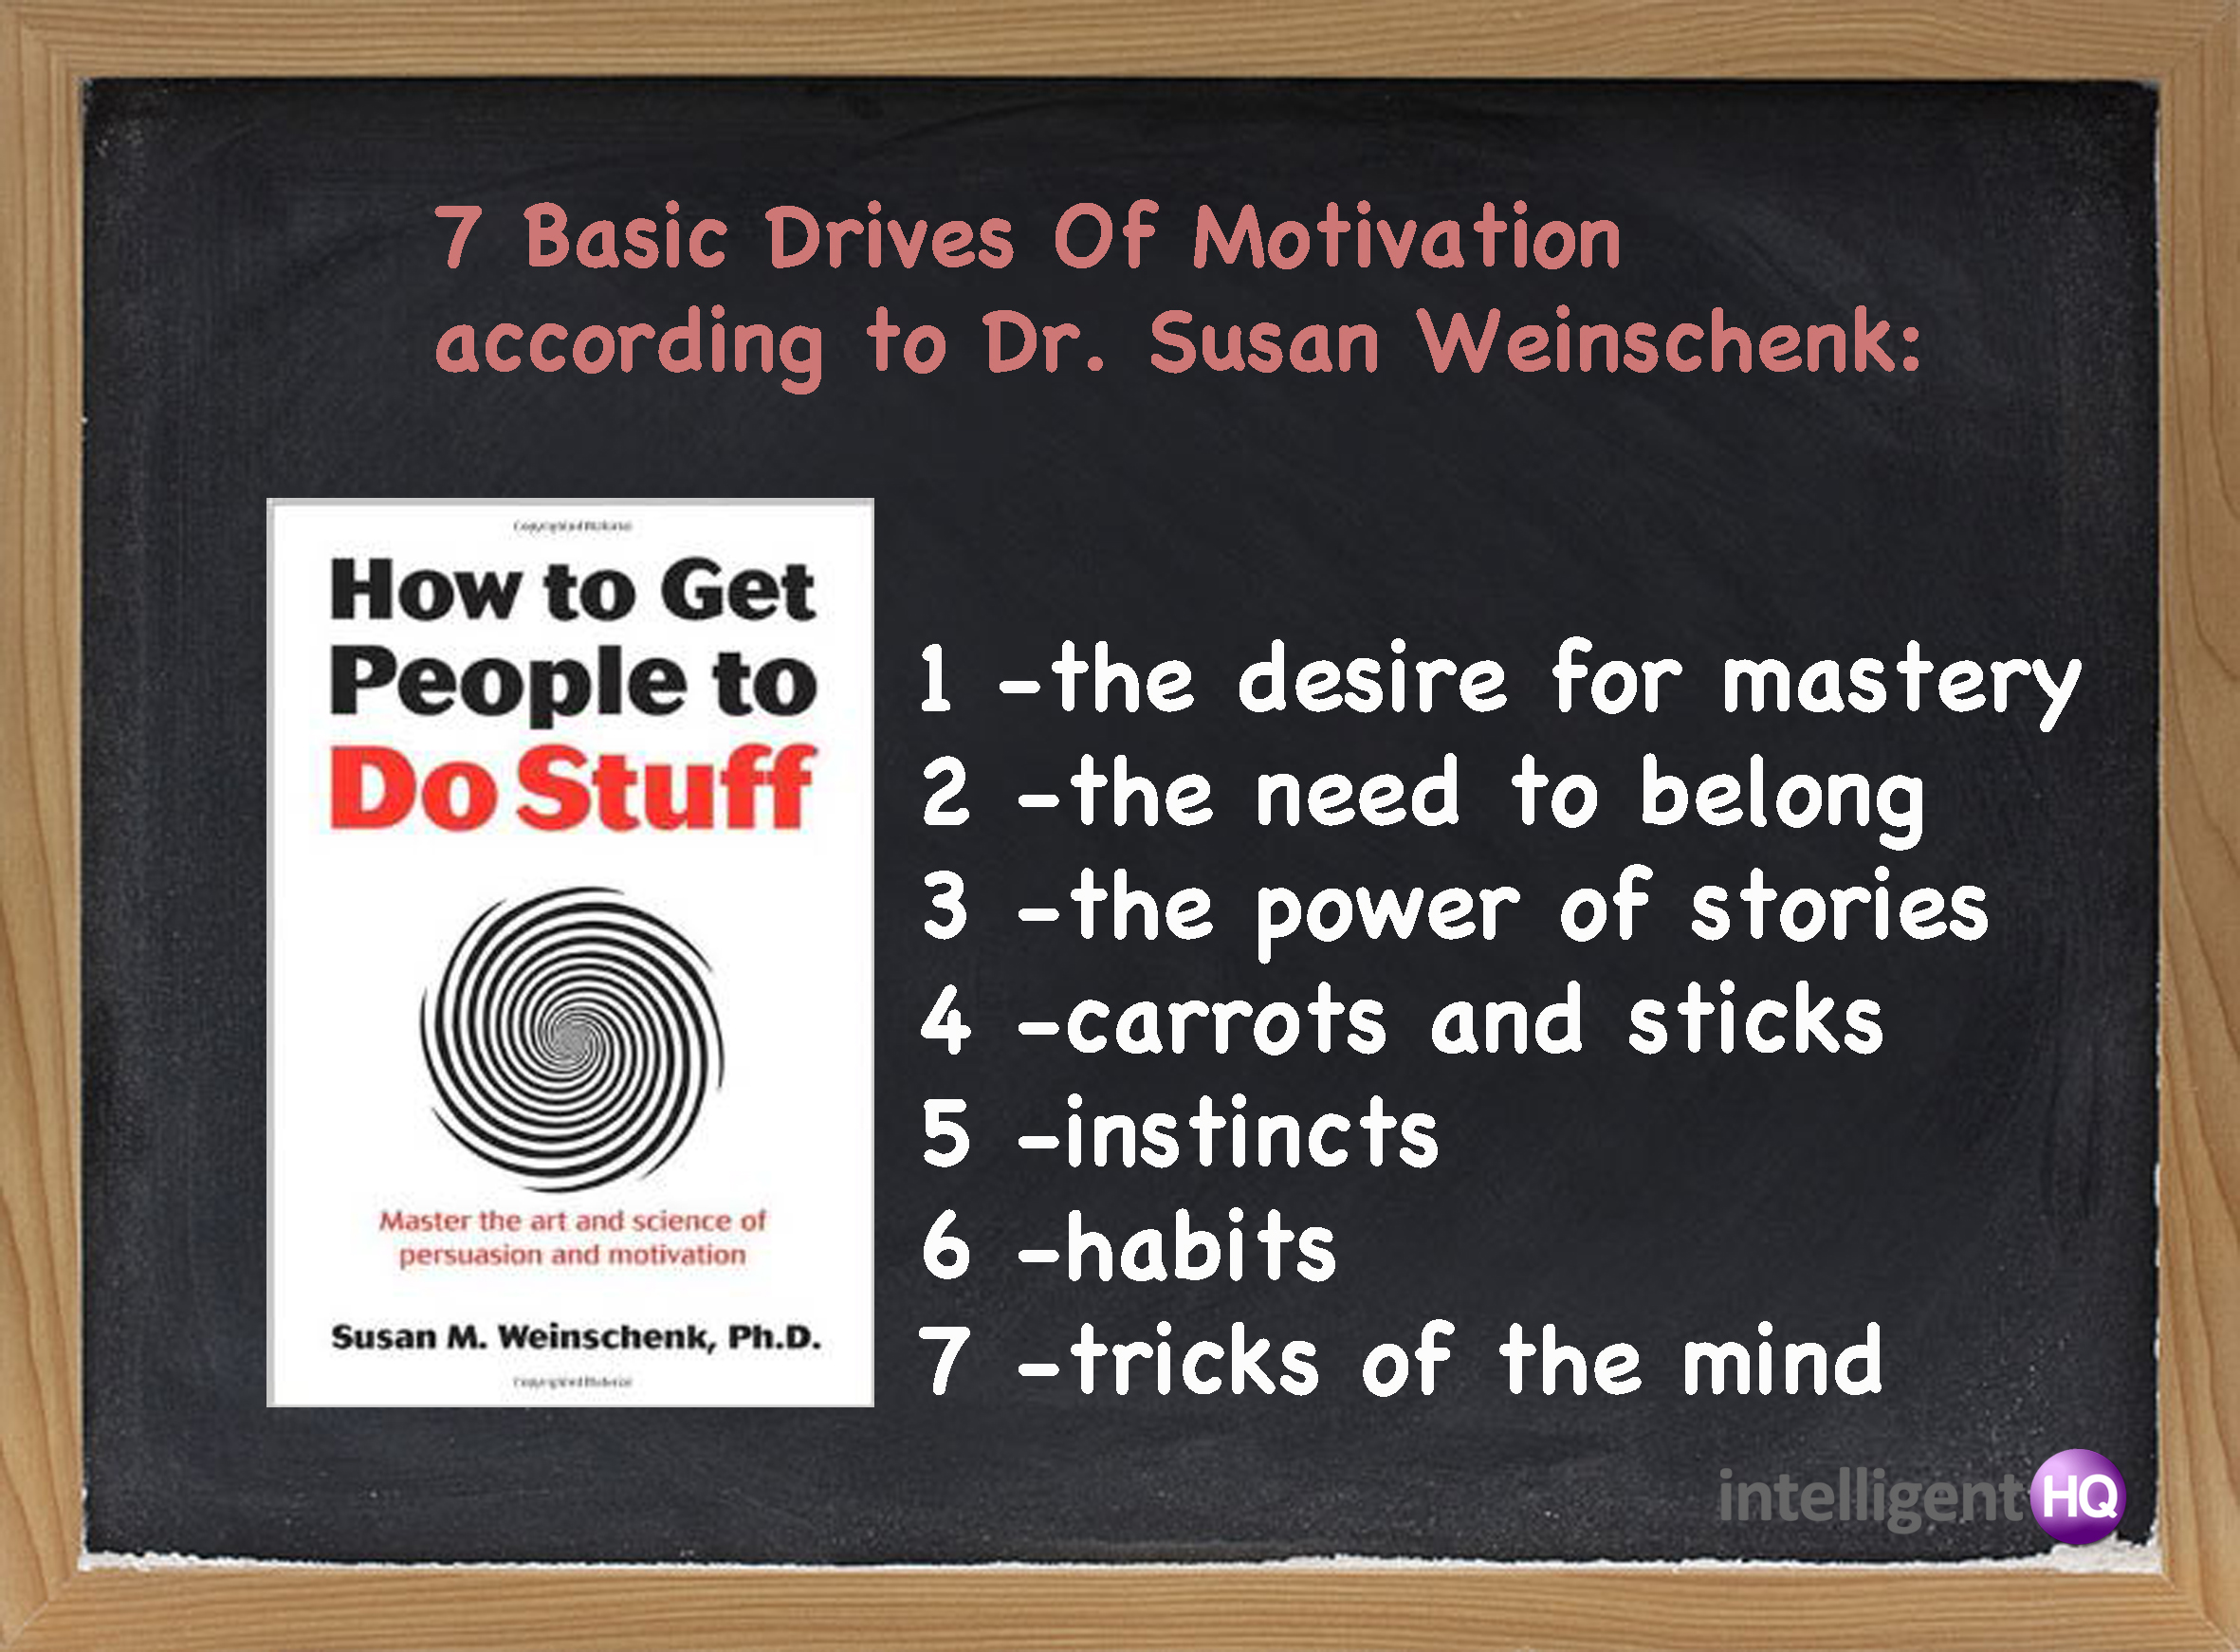 7 basic drives of motivation. Intelligenthq